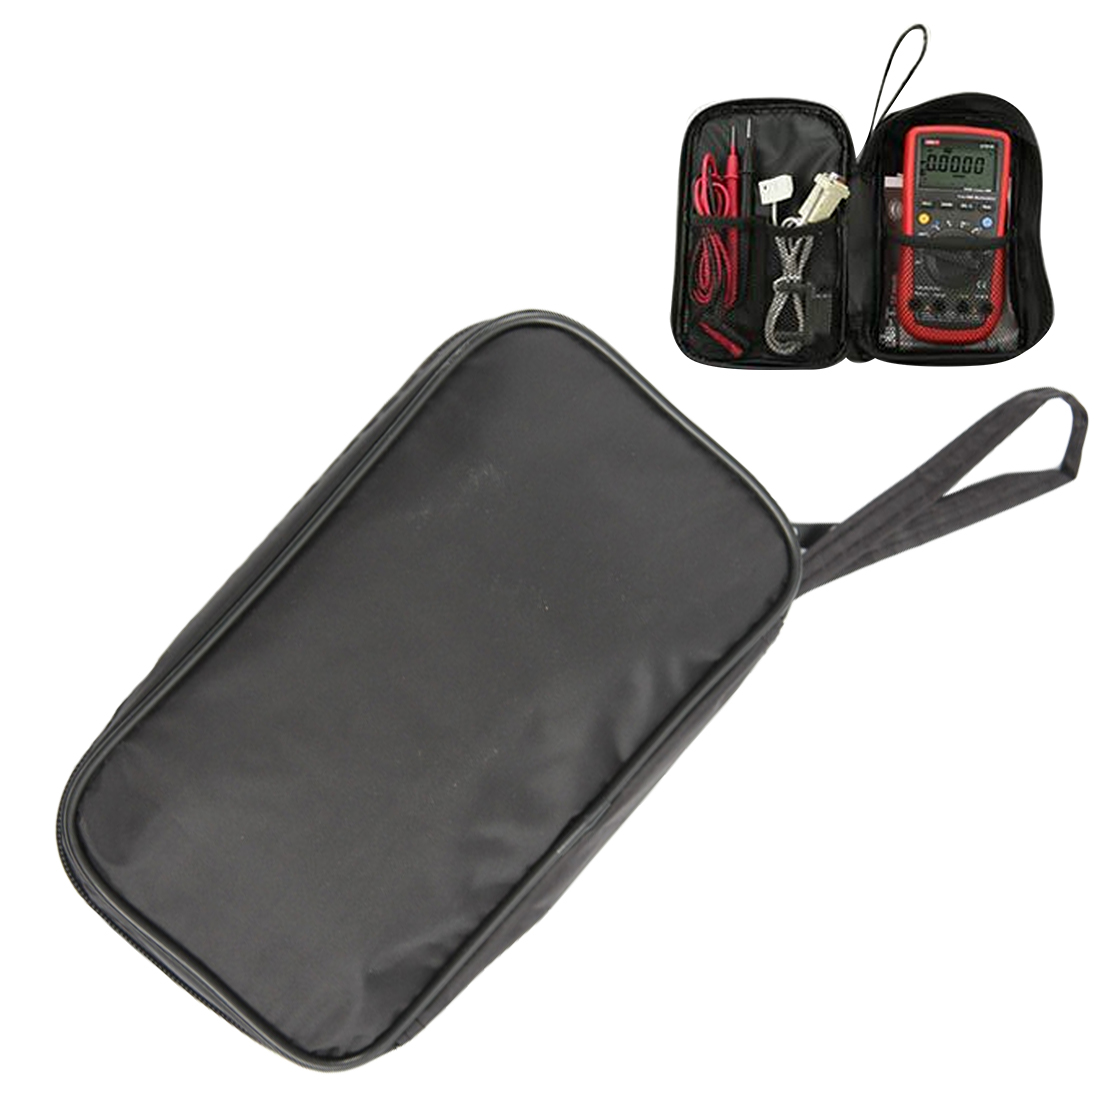 Multimeter Black Canvas Bag Waterproof Tools Bag For UT61 Series Digital Multimeter Cloth Durable 20*12*4cm